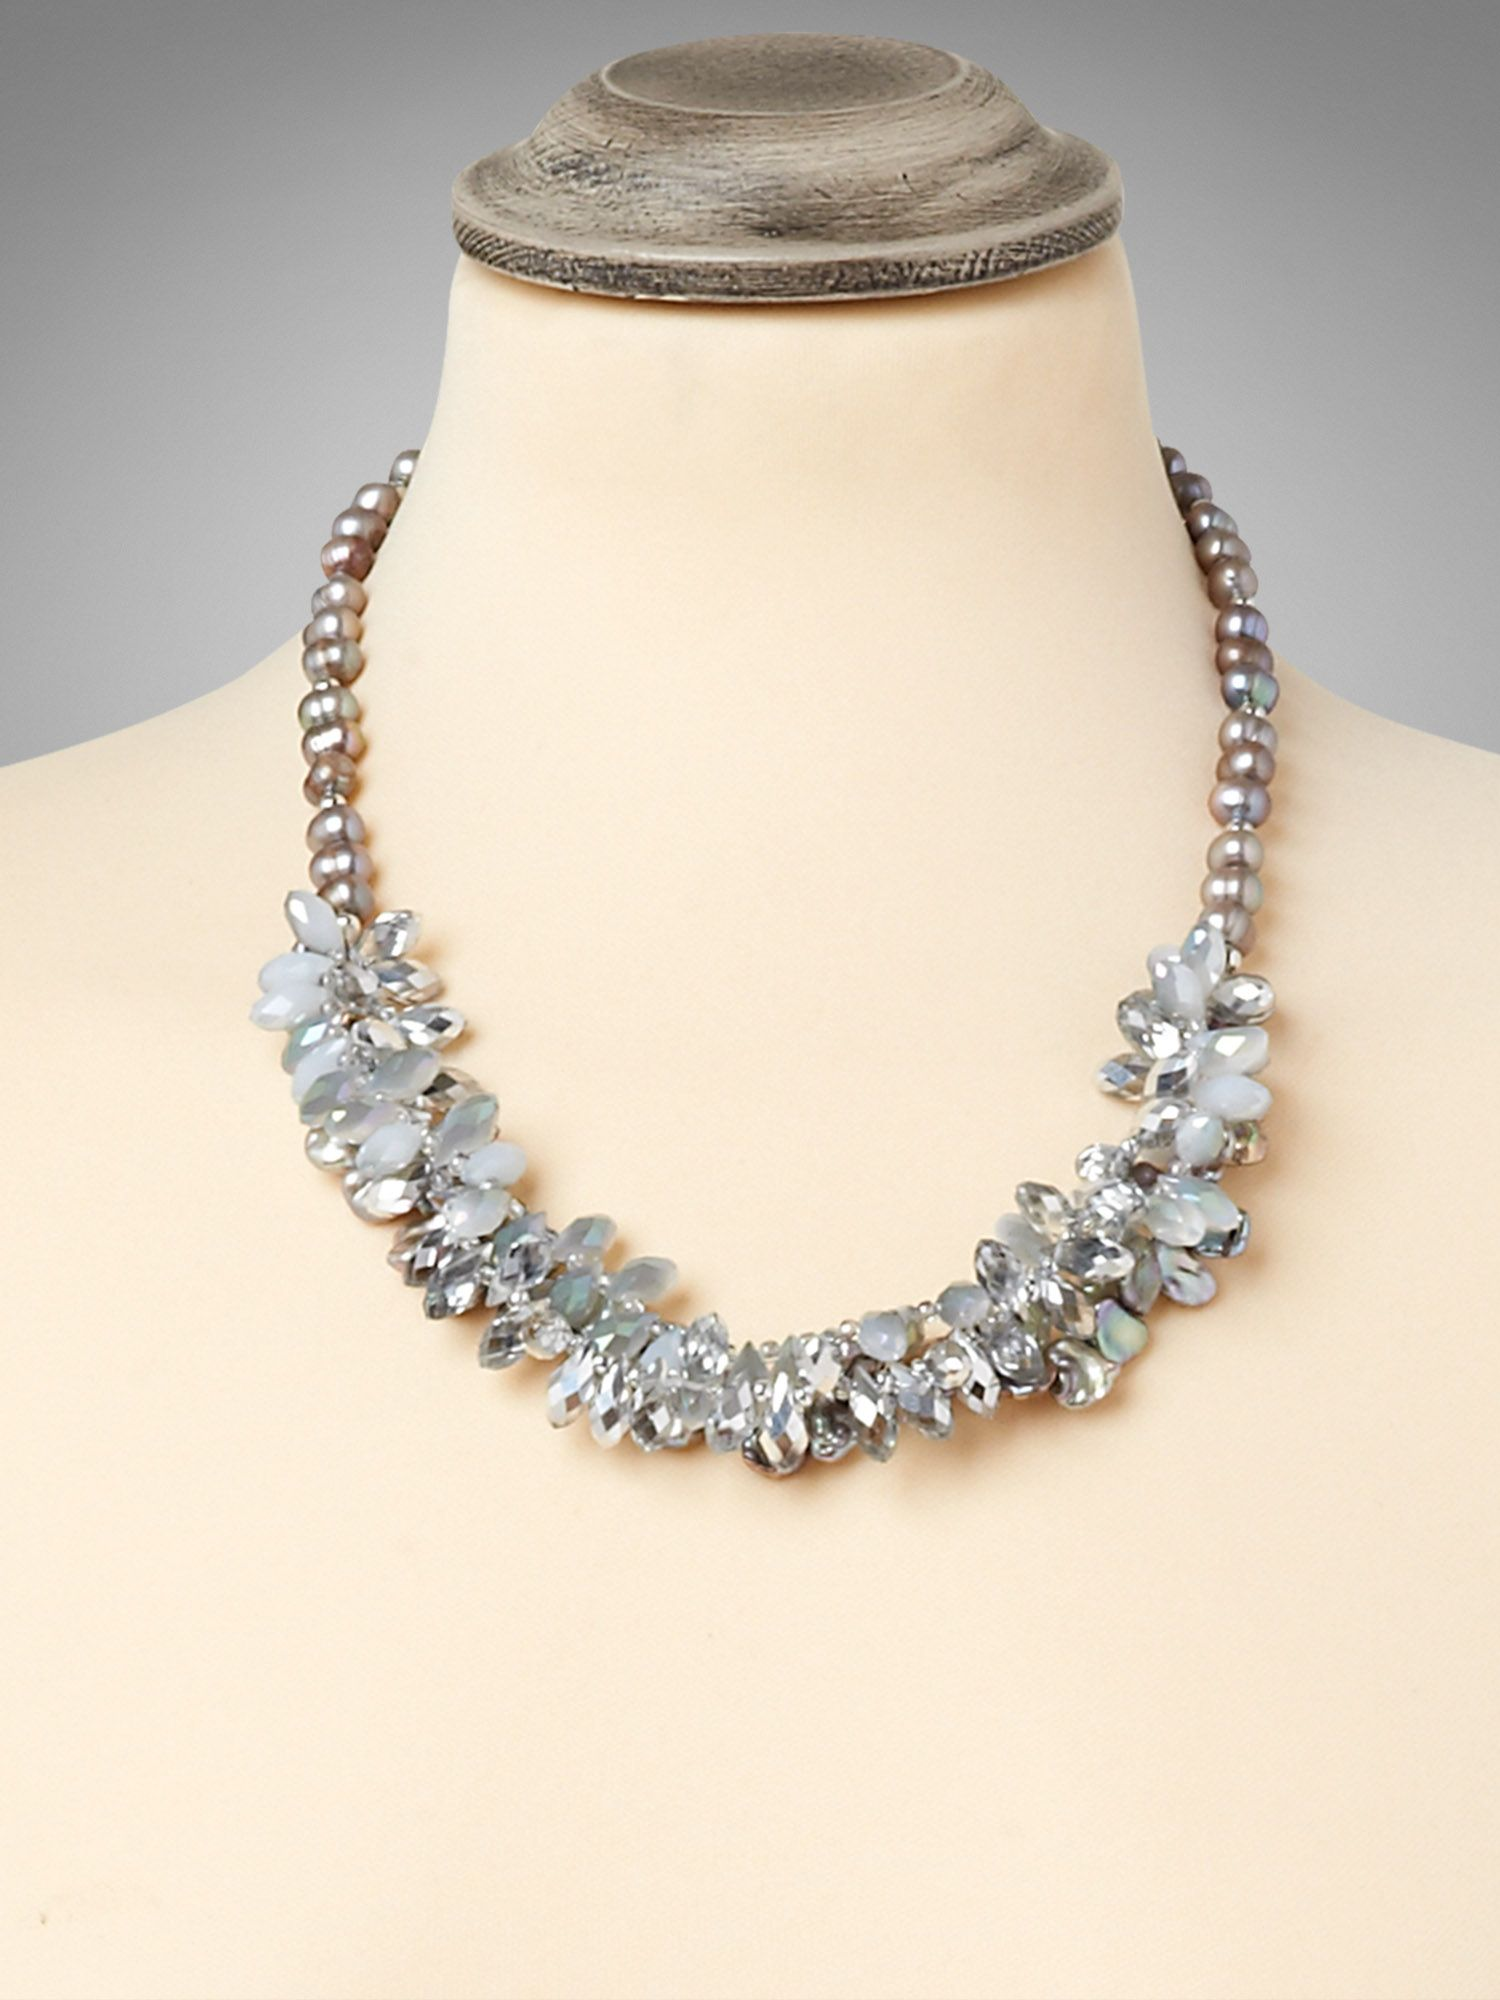 Gina necklace